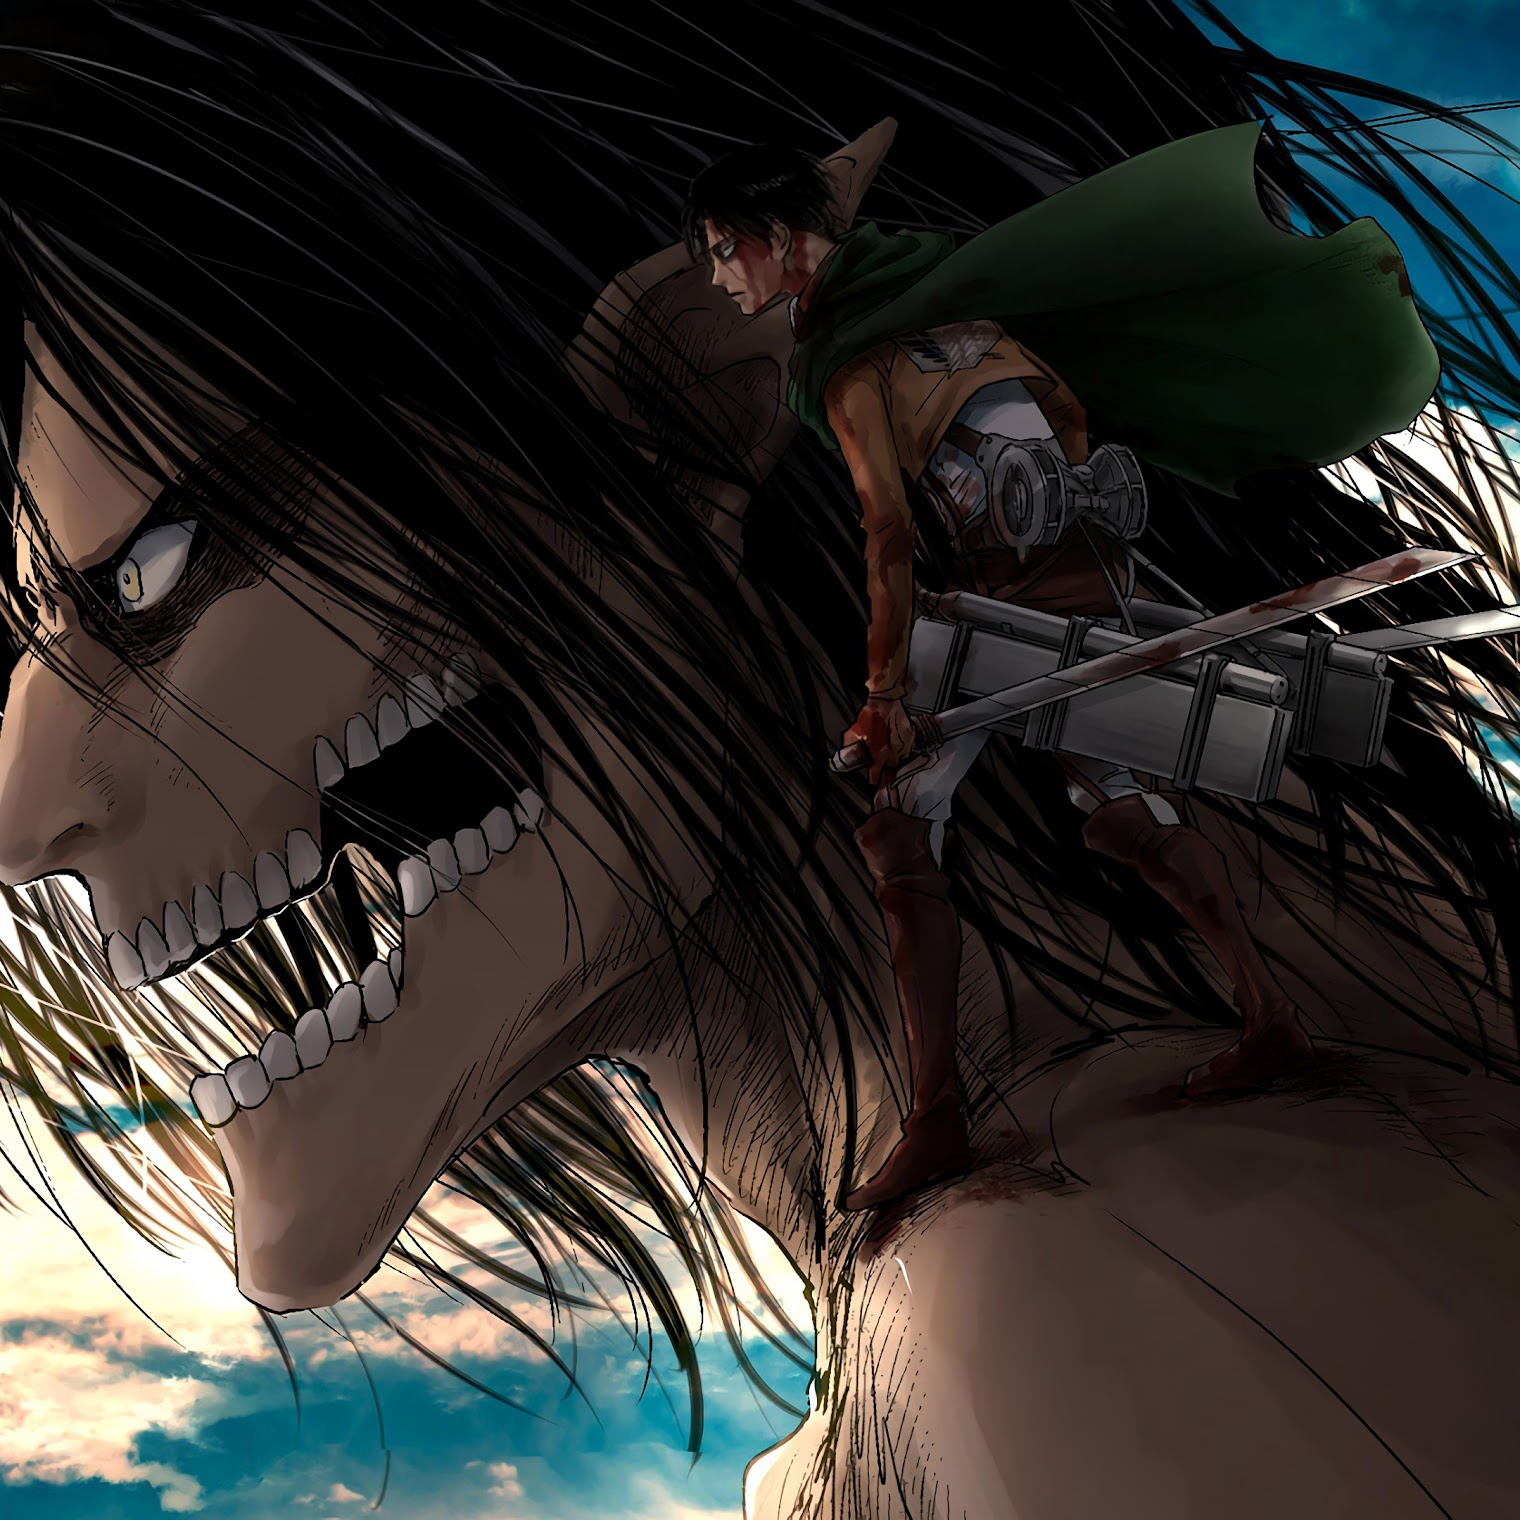 Fancy up your phone's homescreen with the samsung galaxy z fold 2 wallpapers. Attack Titan and Levi, Attack on Titan, 4K, #170 Wallpaper